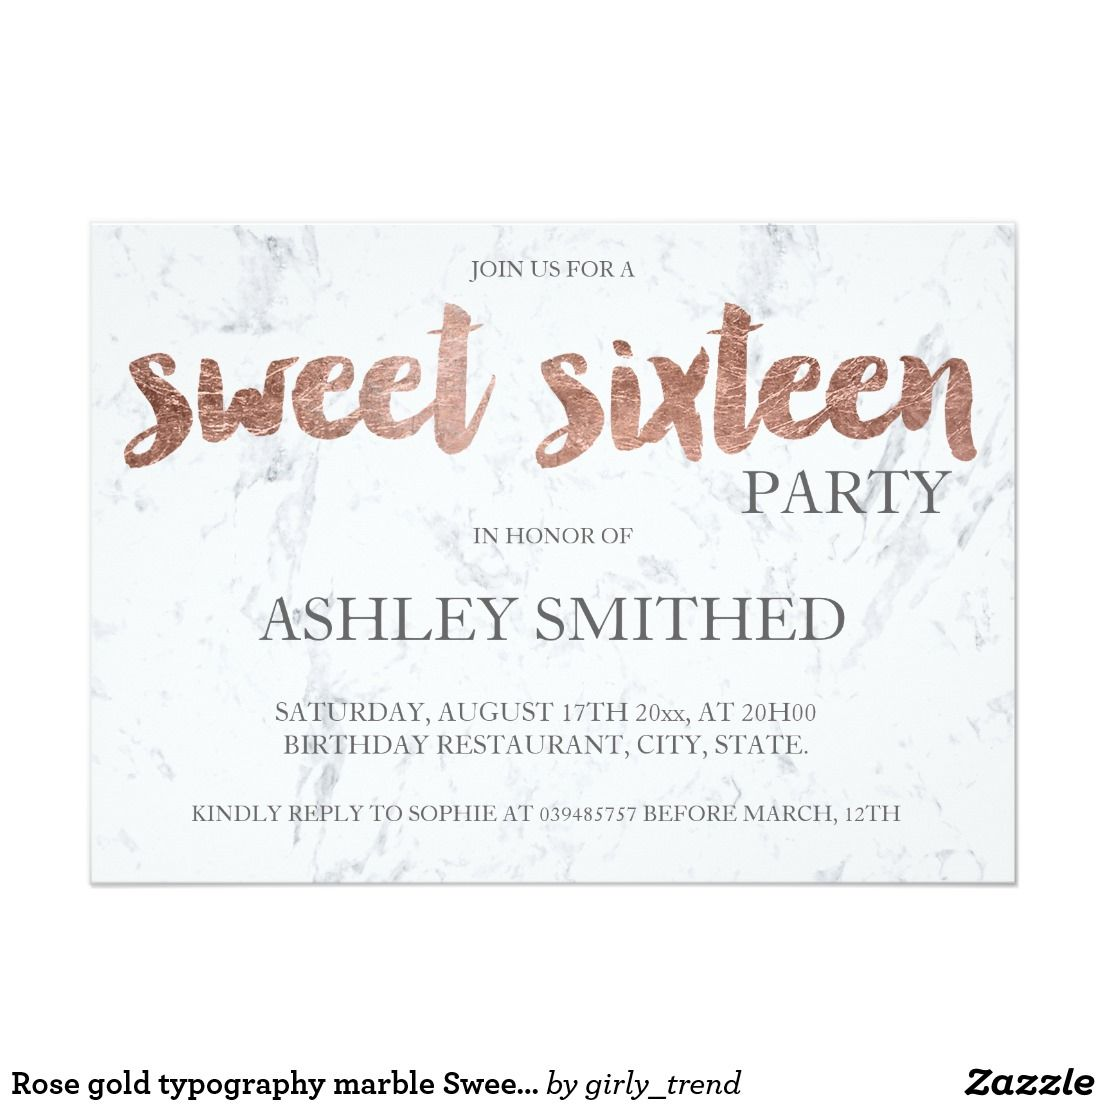 Rose gold typography marble sweet 16 invitation rose gold typography marble sweet 16 card rose gold typography marble sweet sixteen birthday party invitation stopboris Images